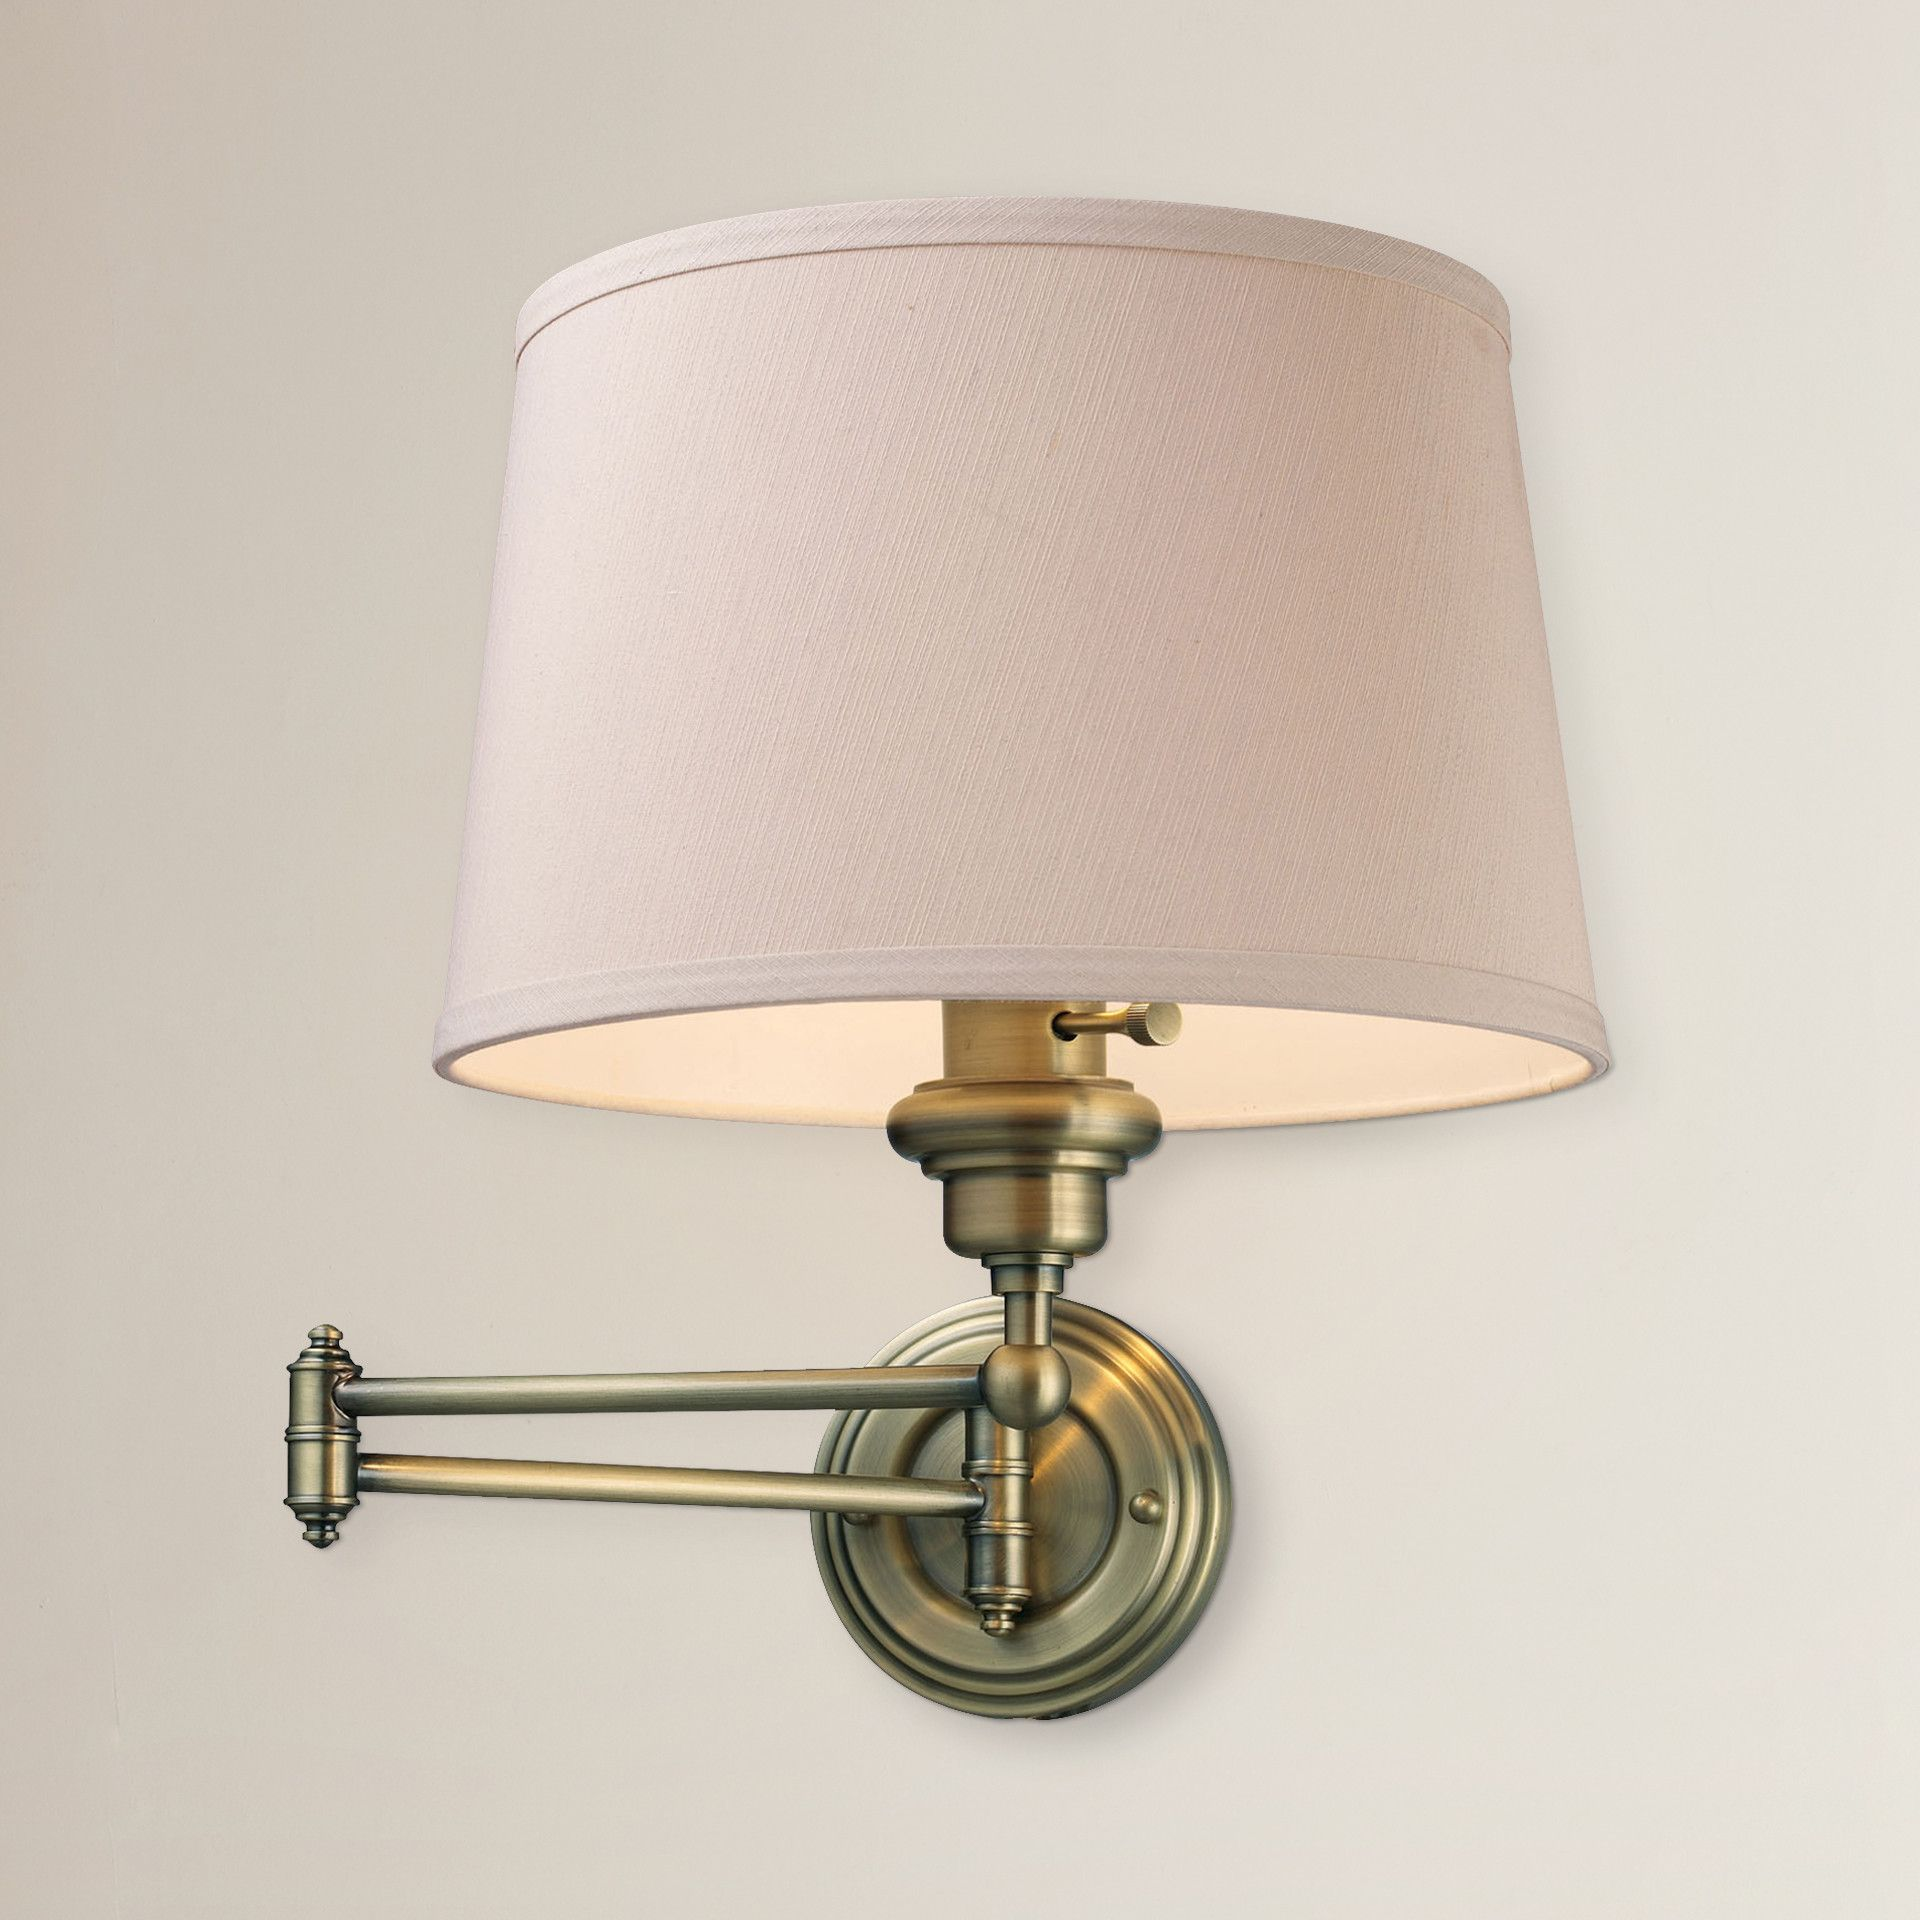 Daisy Swing Arm Lamp Products Pinterest